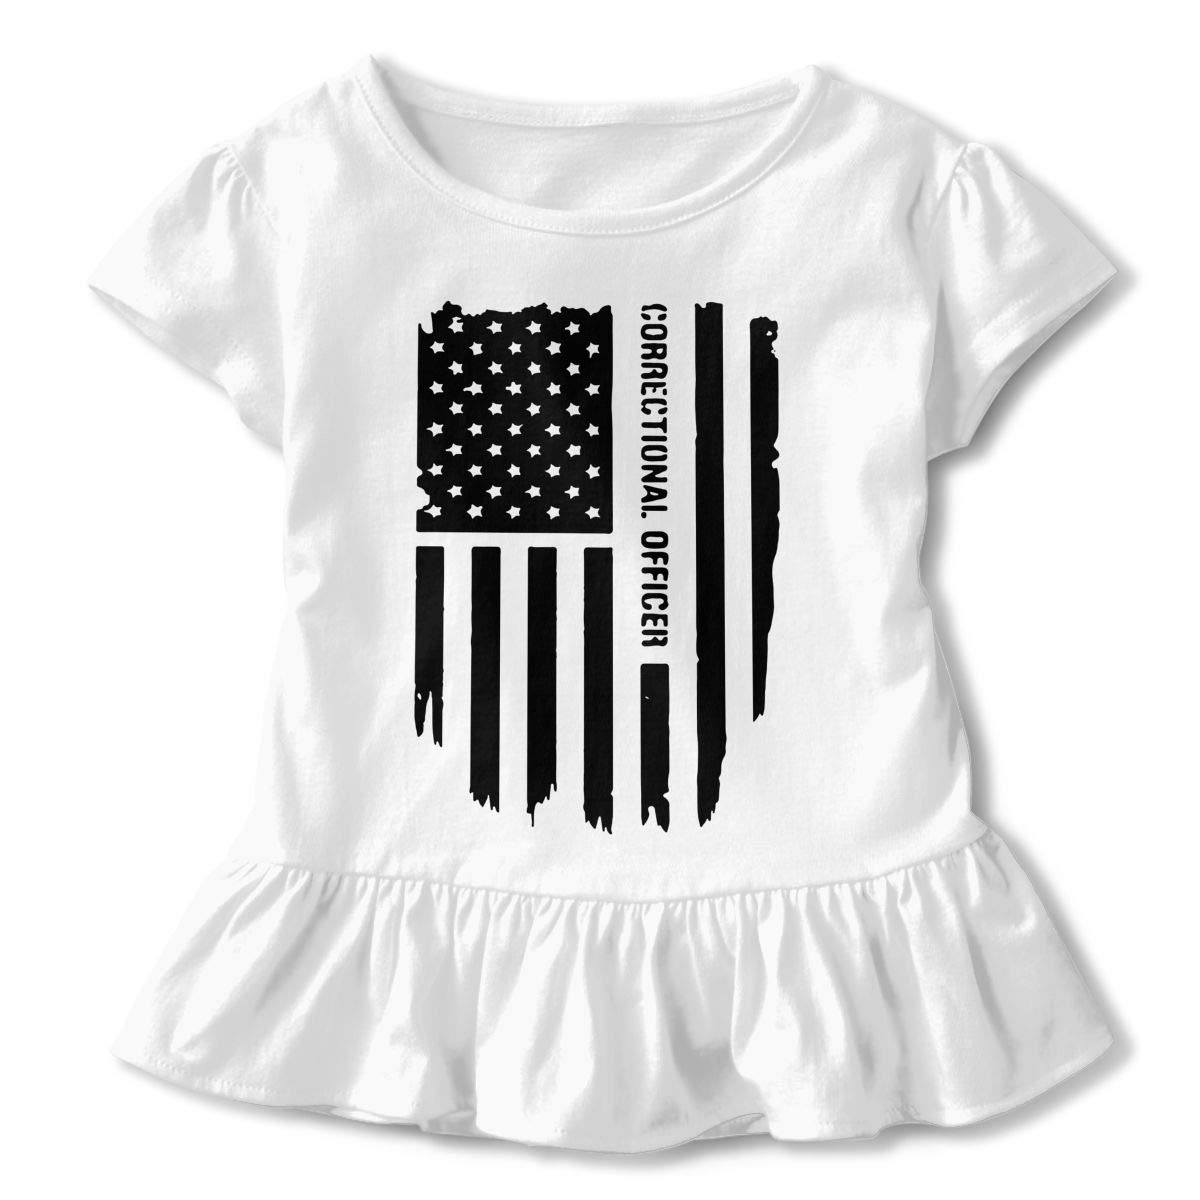 8301c5a2 Amazon.com: SC_VD08 Thin Silver Line Correctional Officer Kid Crew Neck  Shirt Clothing: Clothing